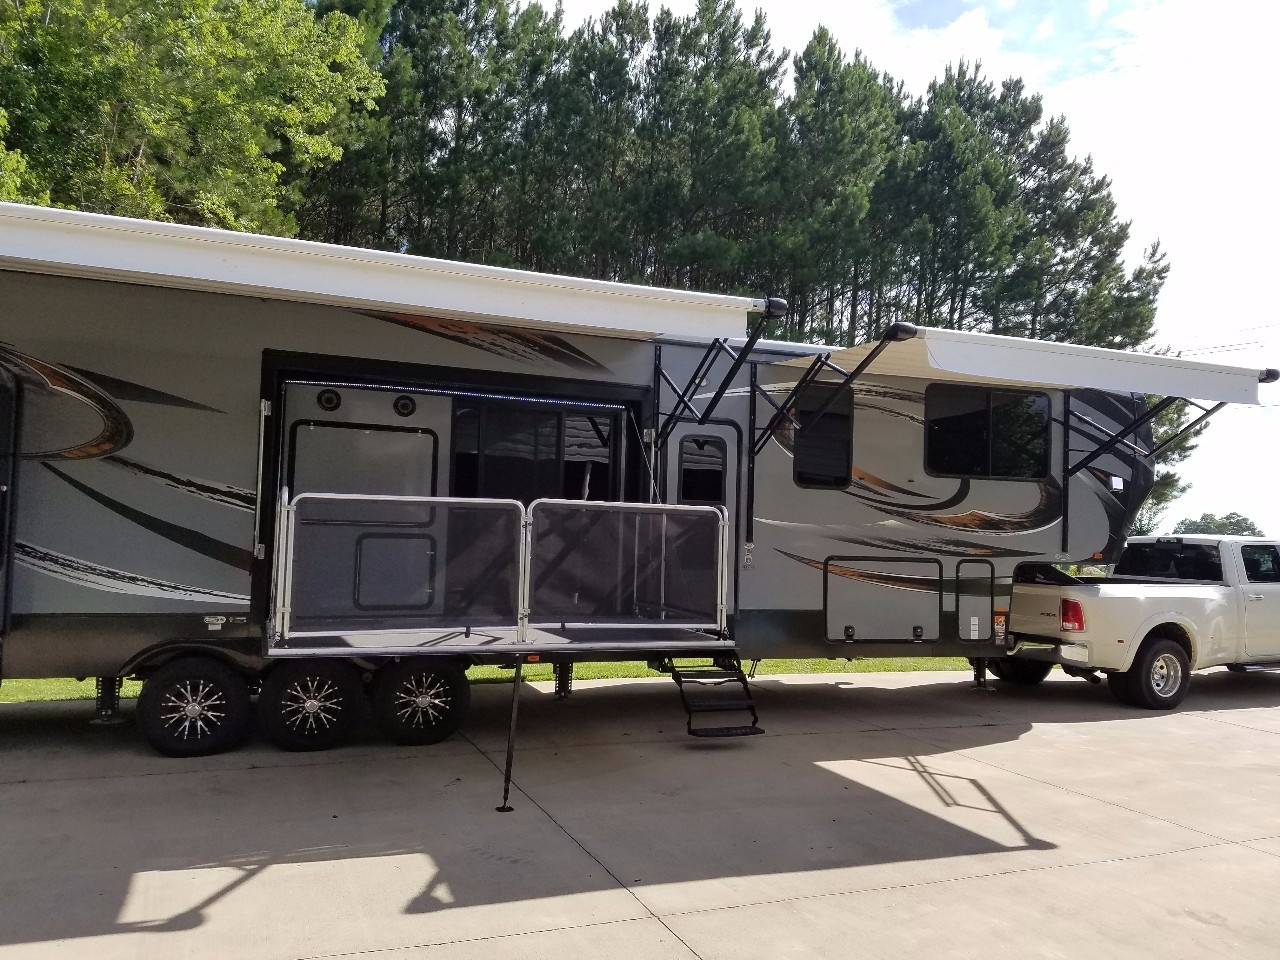 New Or Used Heartland Cyclone Toy Hauler RVs for Sale - RVTrader.com